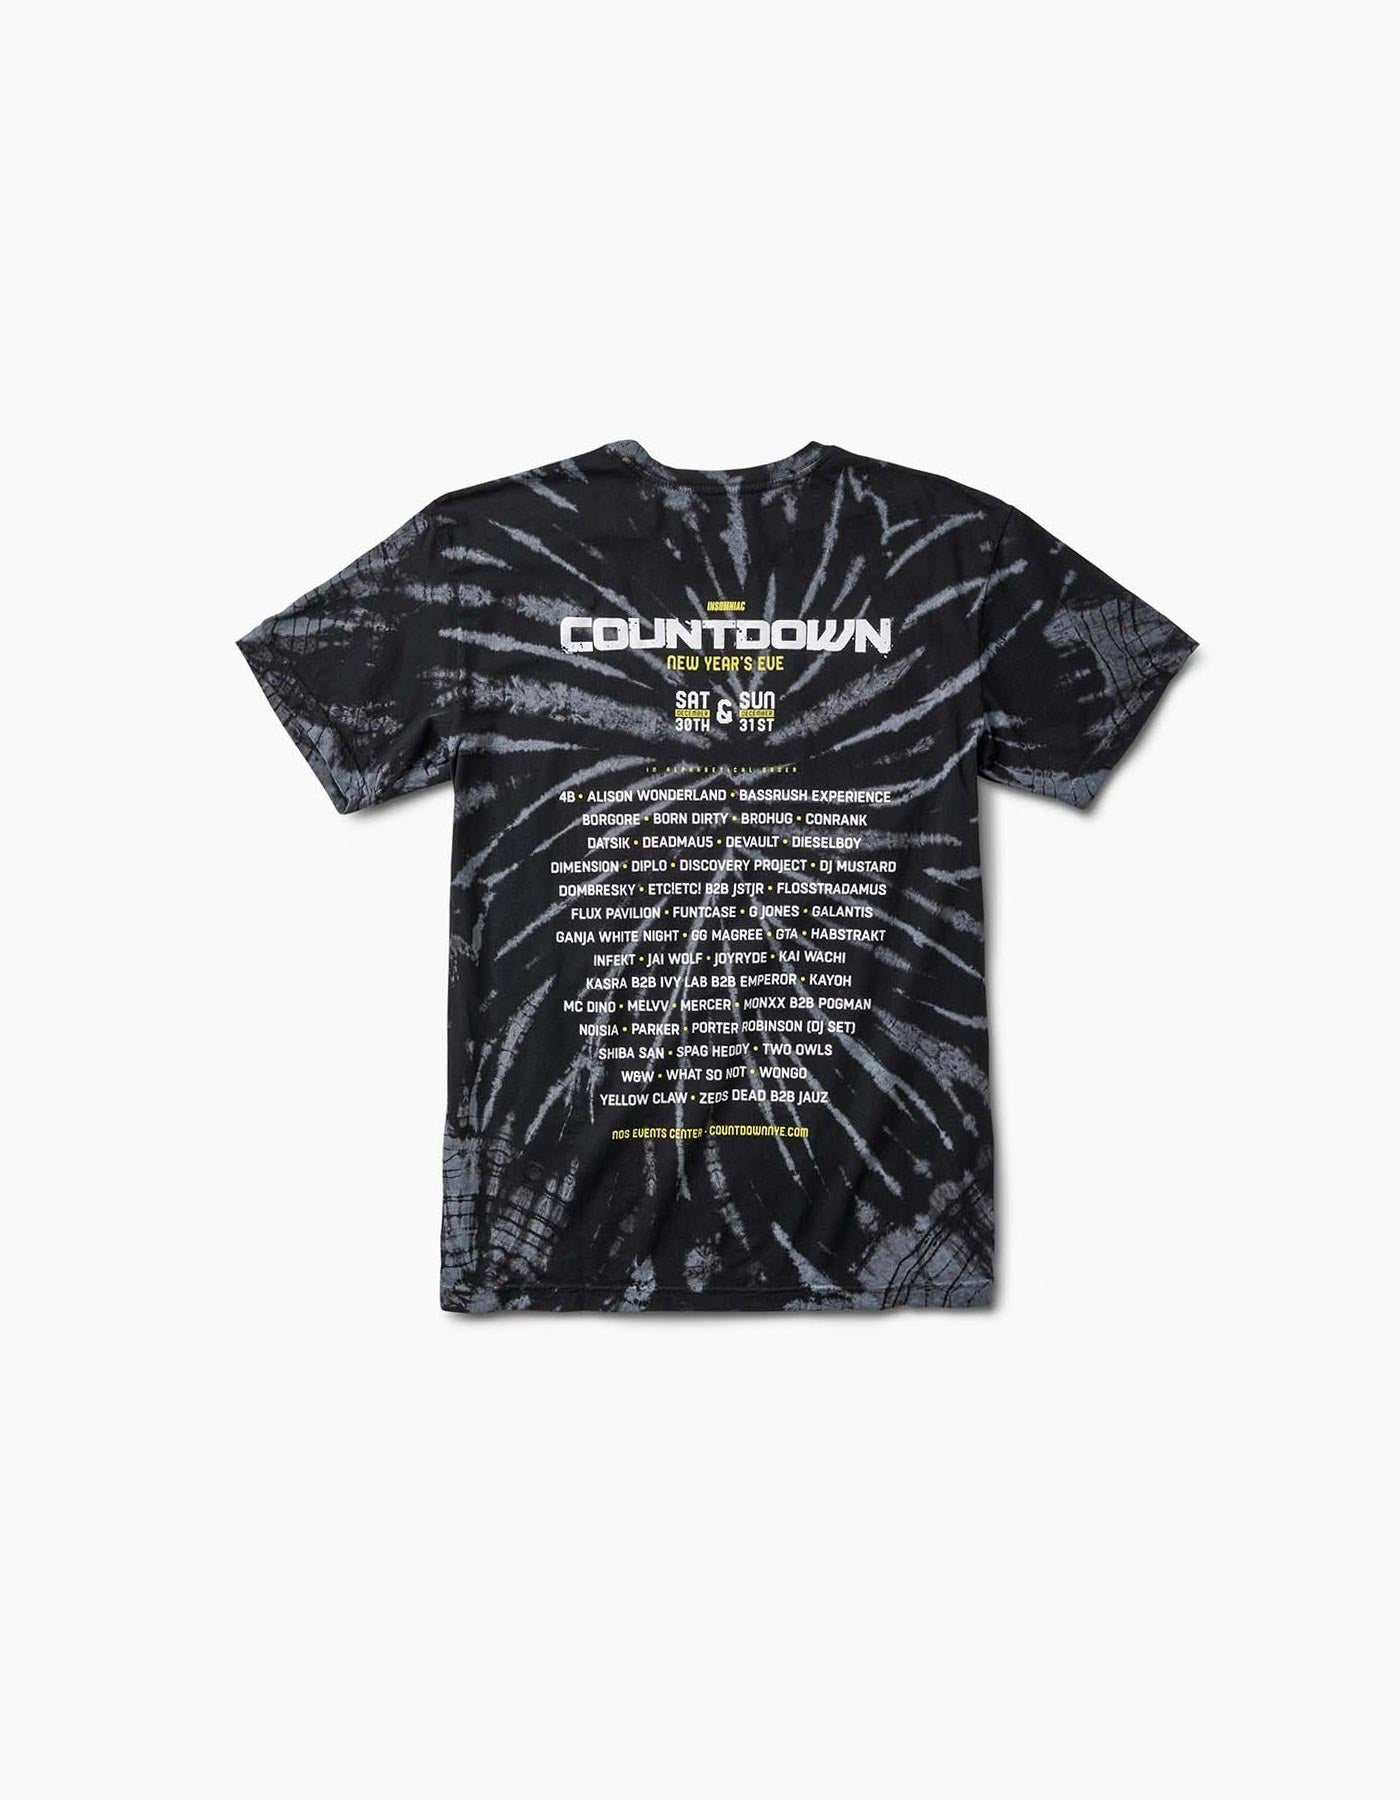 Countdown 2017 - Clockwork Line Up Tee